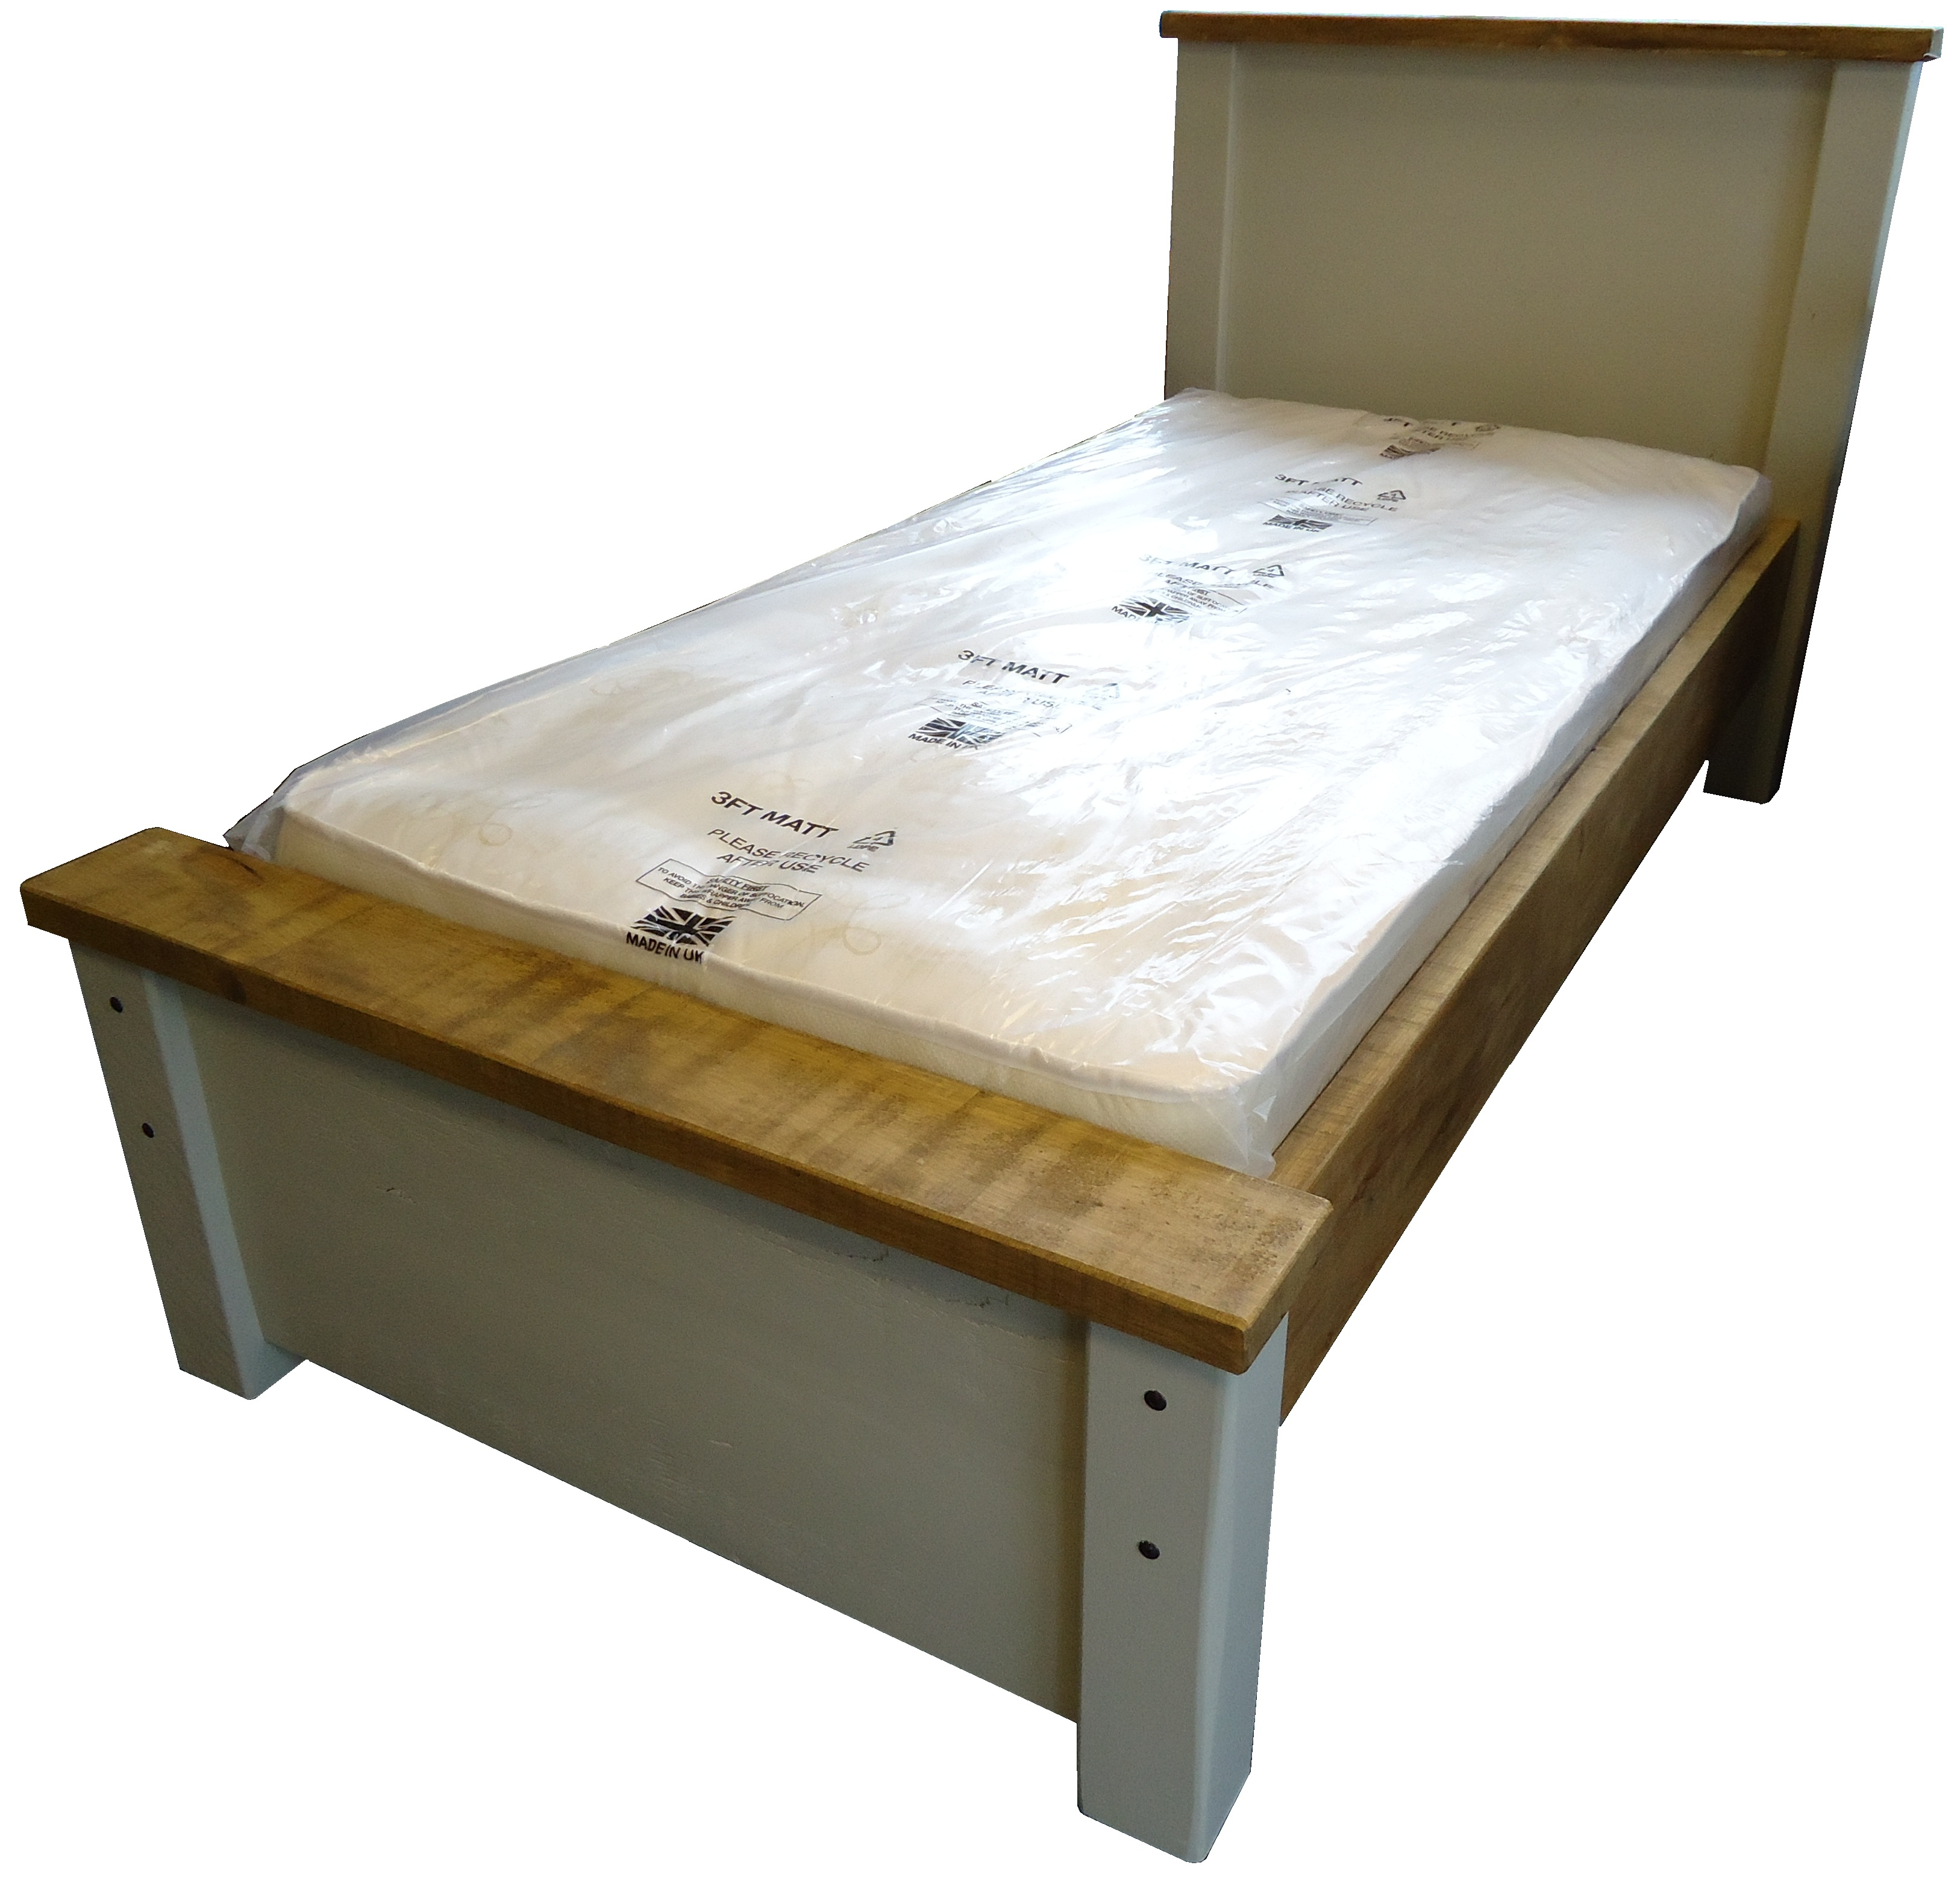 painted rustic double bed frame